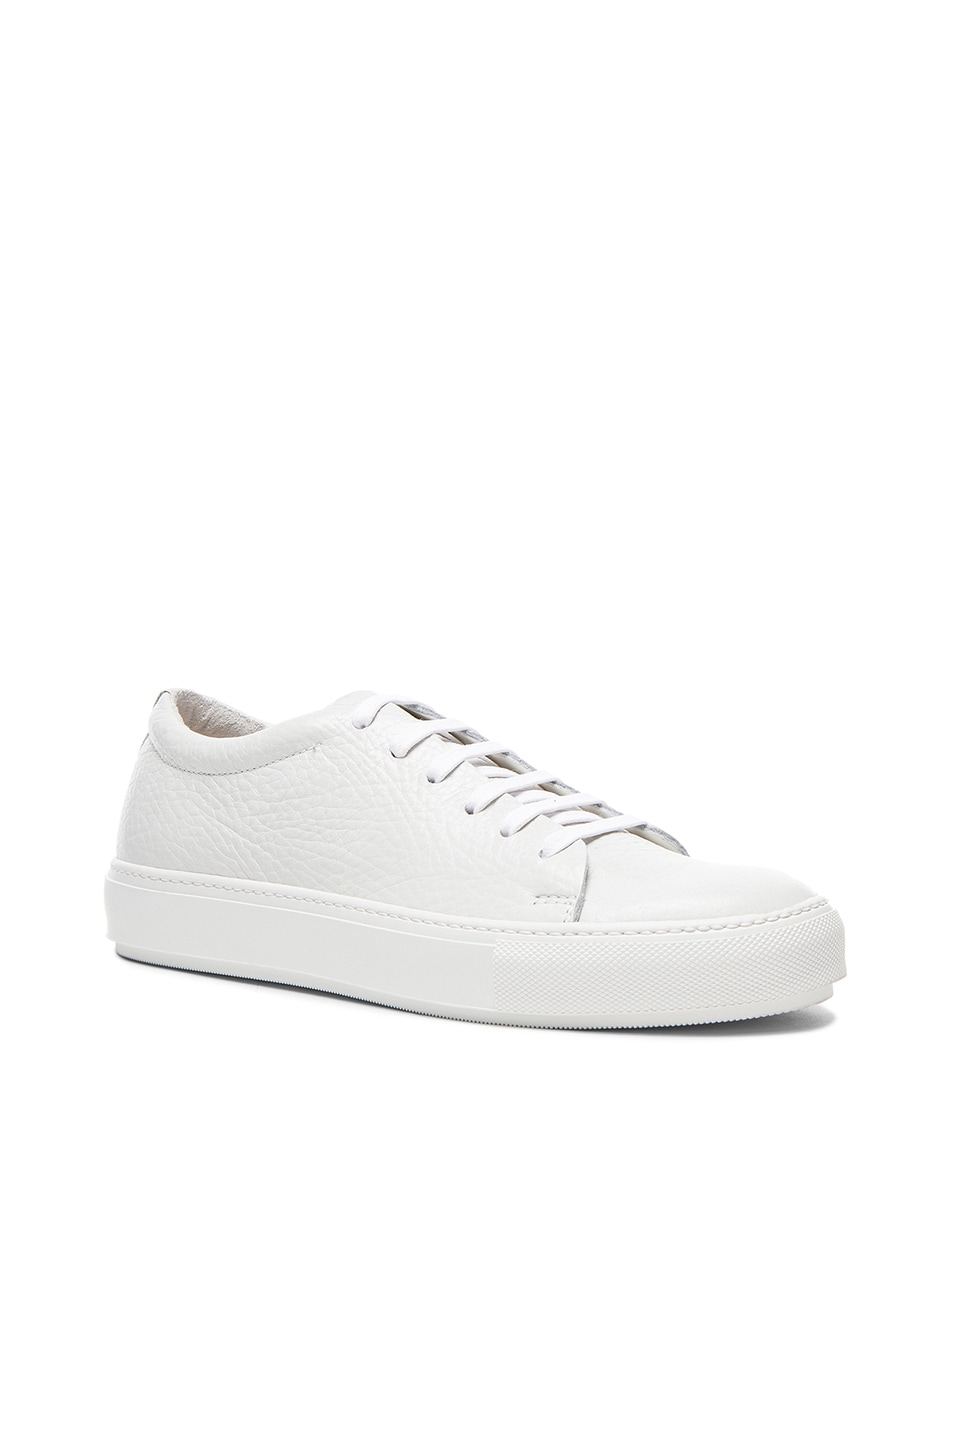 Image 1 of Acne Studios Adrian Grain Leather Sneakers in White